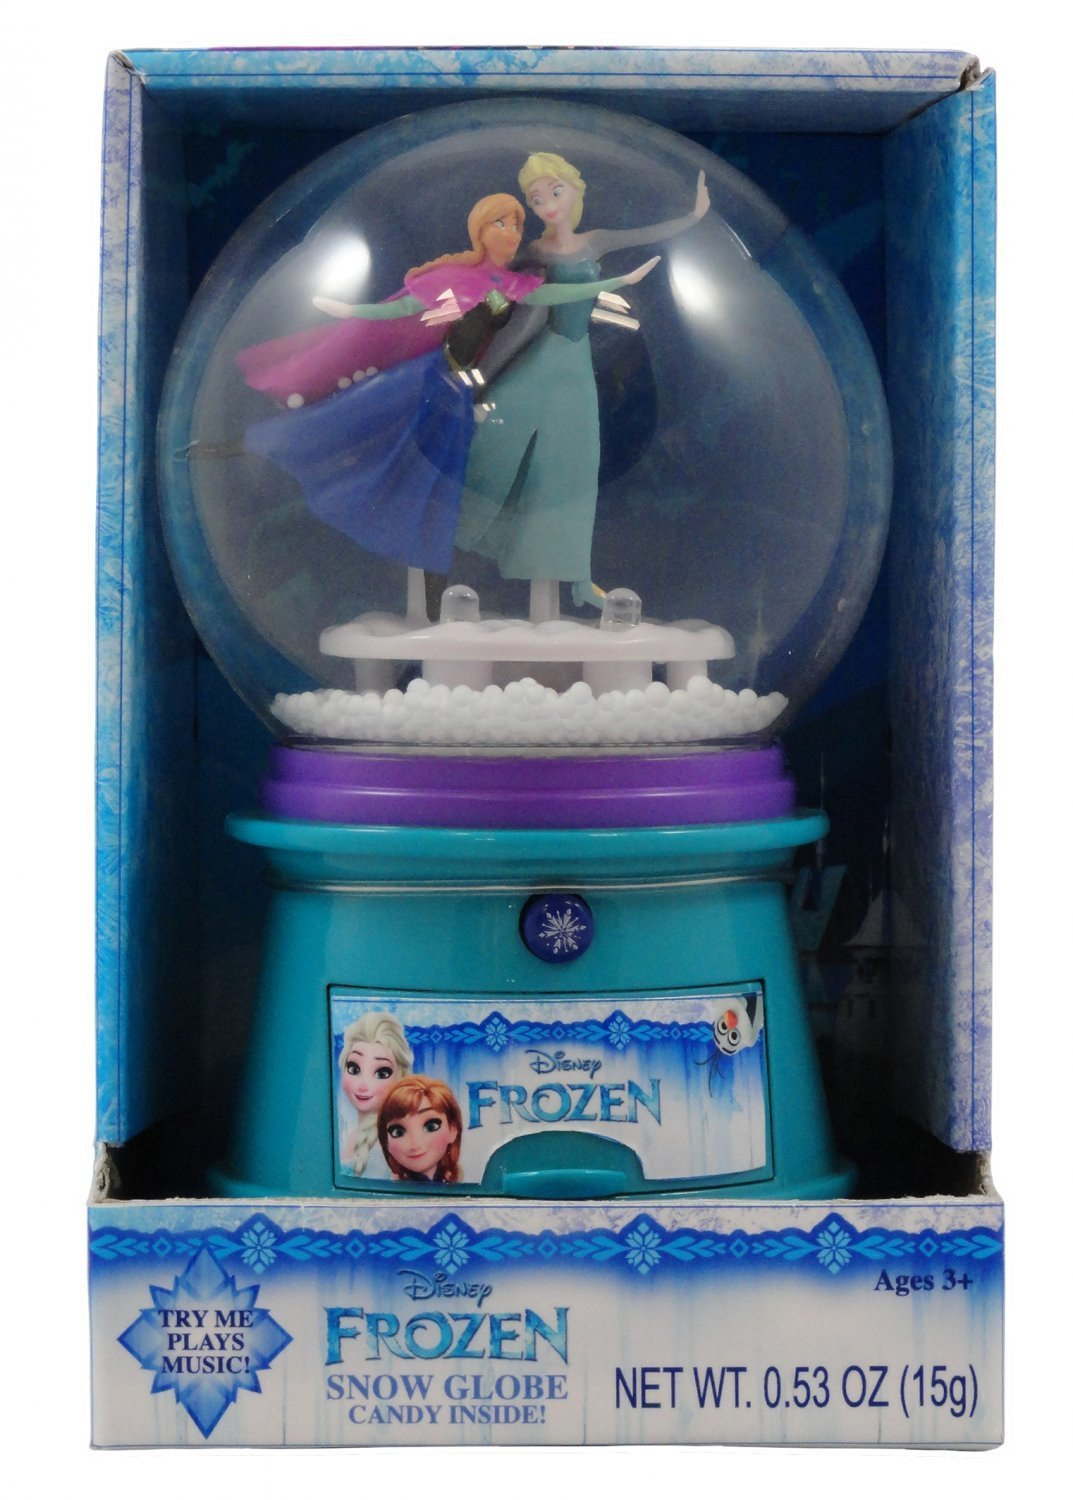 Disney Frozen Anna and Elsa Light up Musical Snowglobe with Candy Inside